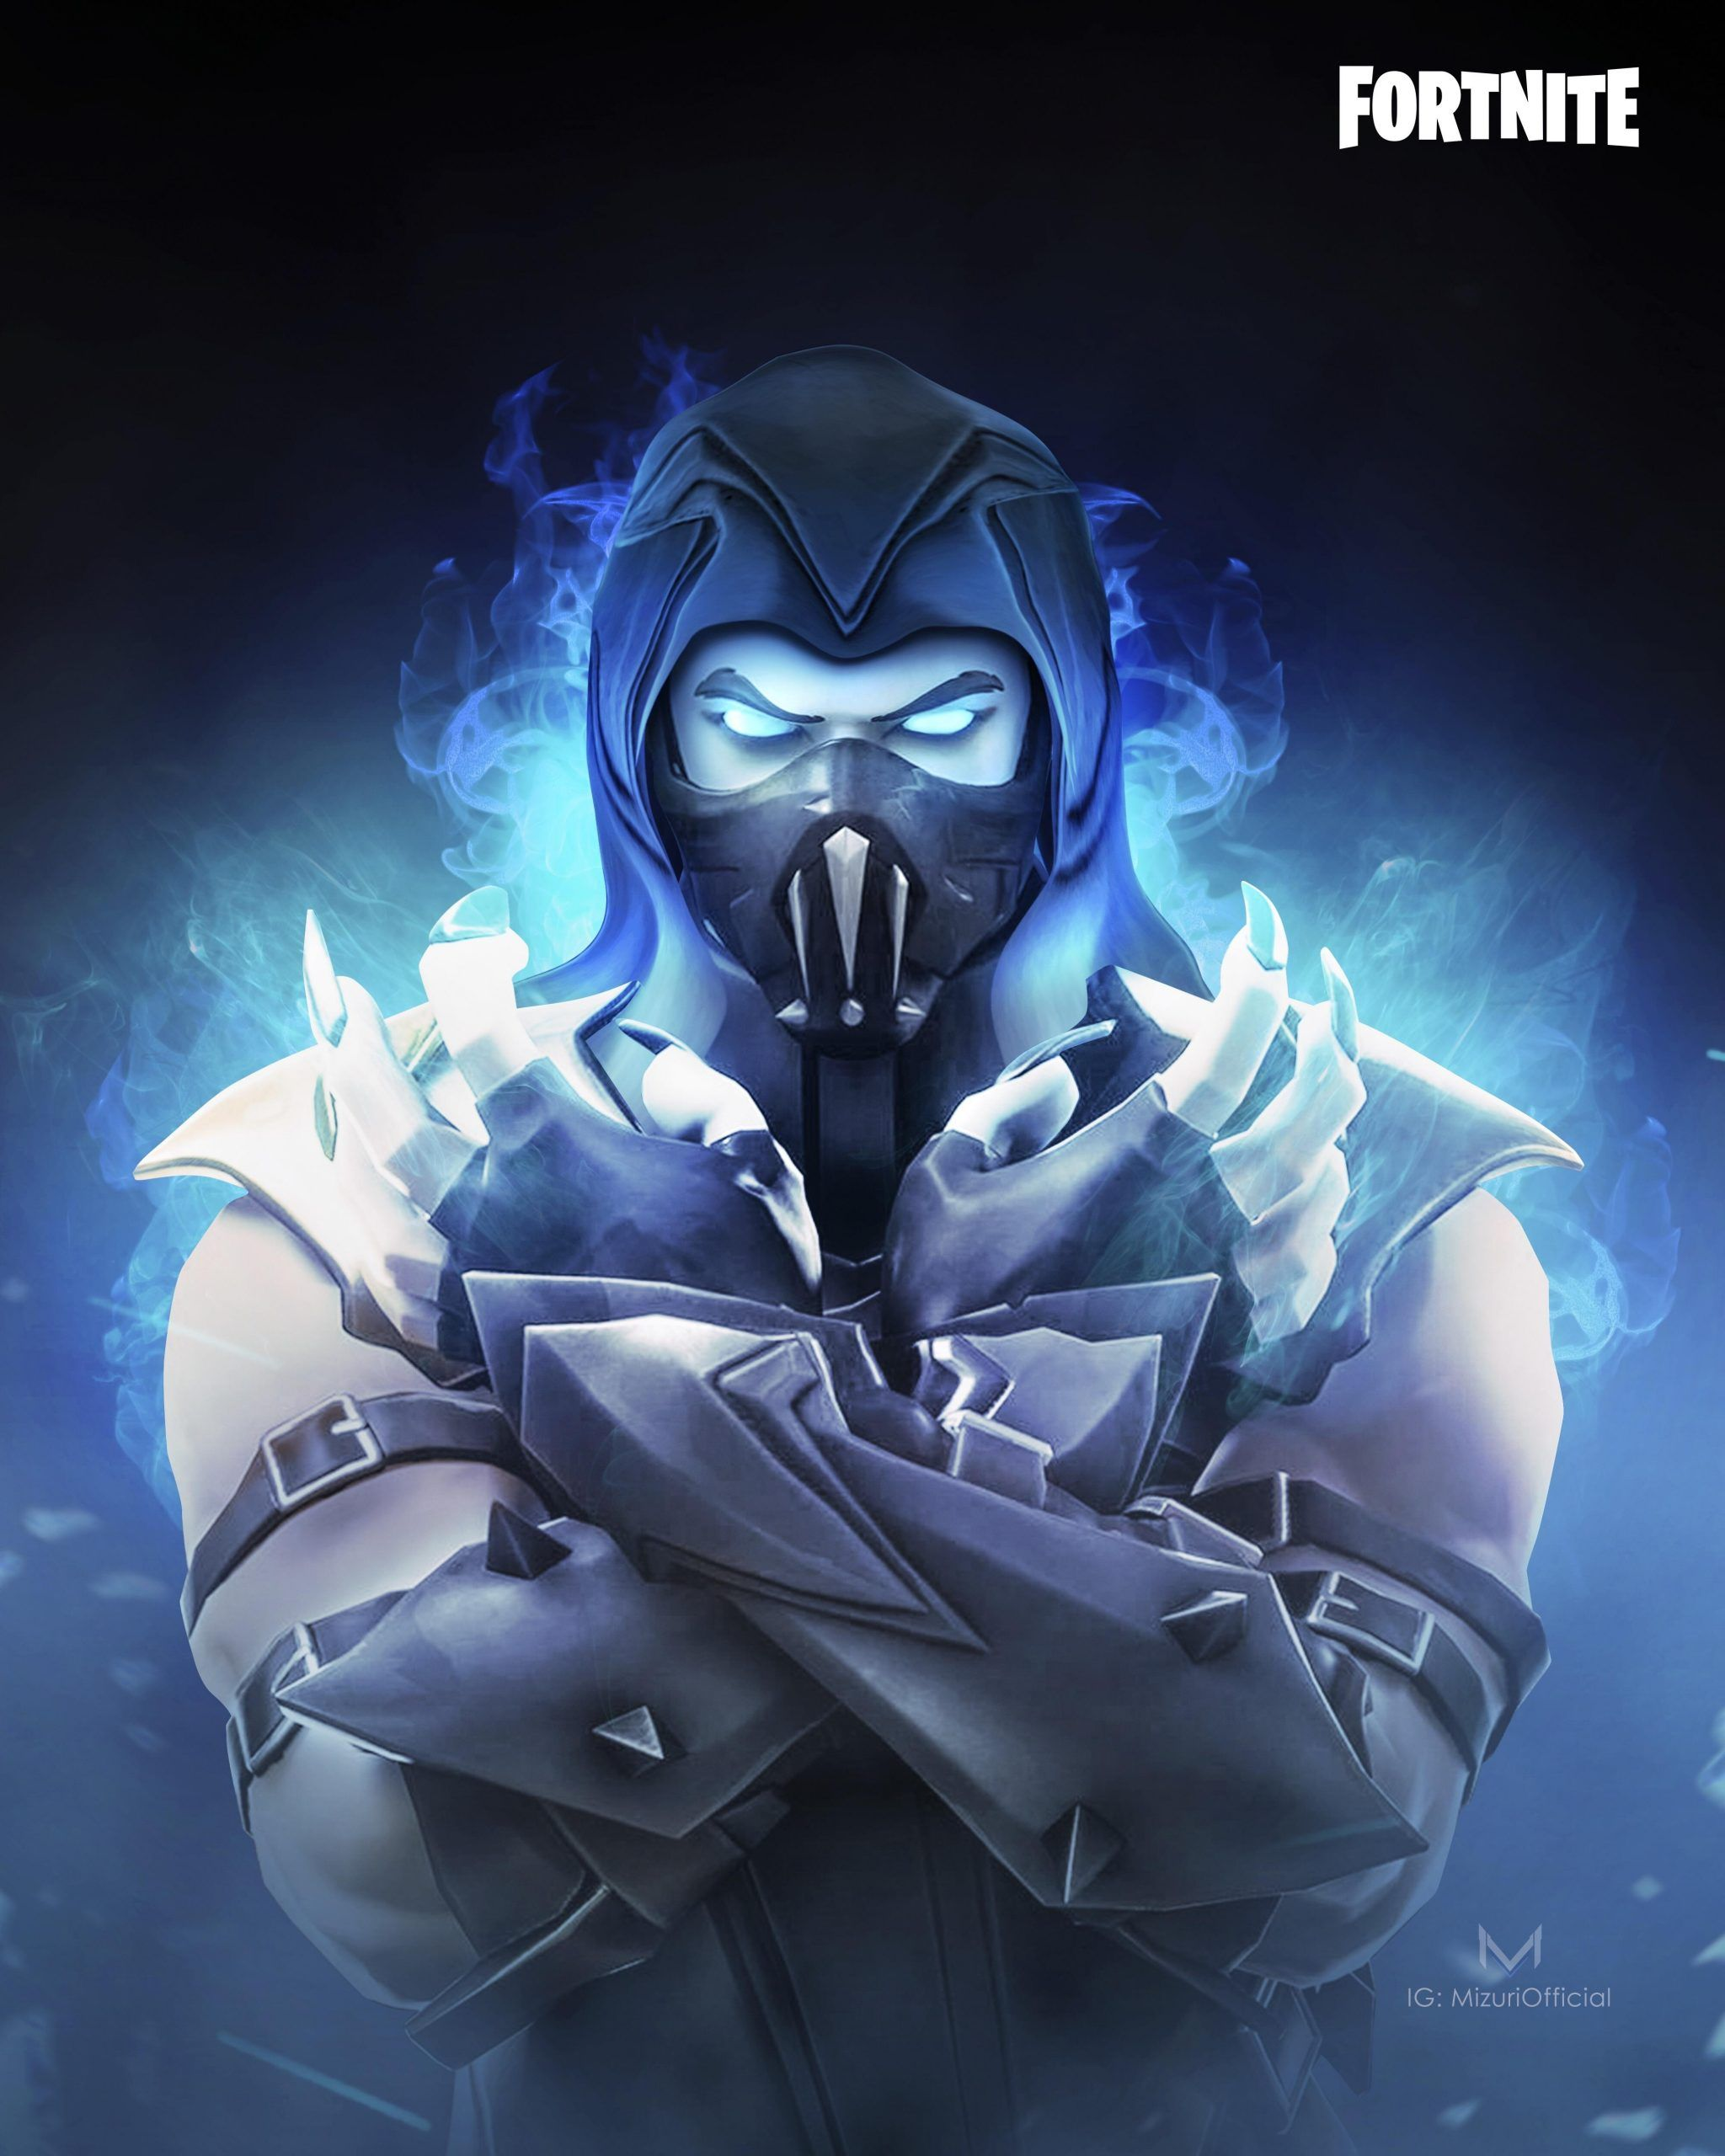 Sub Zero Skin Fortnite Fortnite X Mortal Kombat Subzero Version A Few People Scaled In 2020 Mortal Kombat Mortal Kombat Characters Mortal Kombat Art